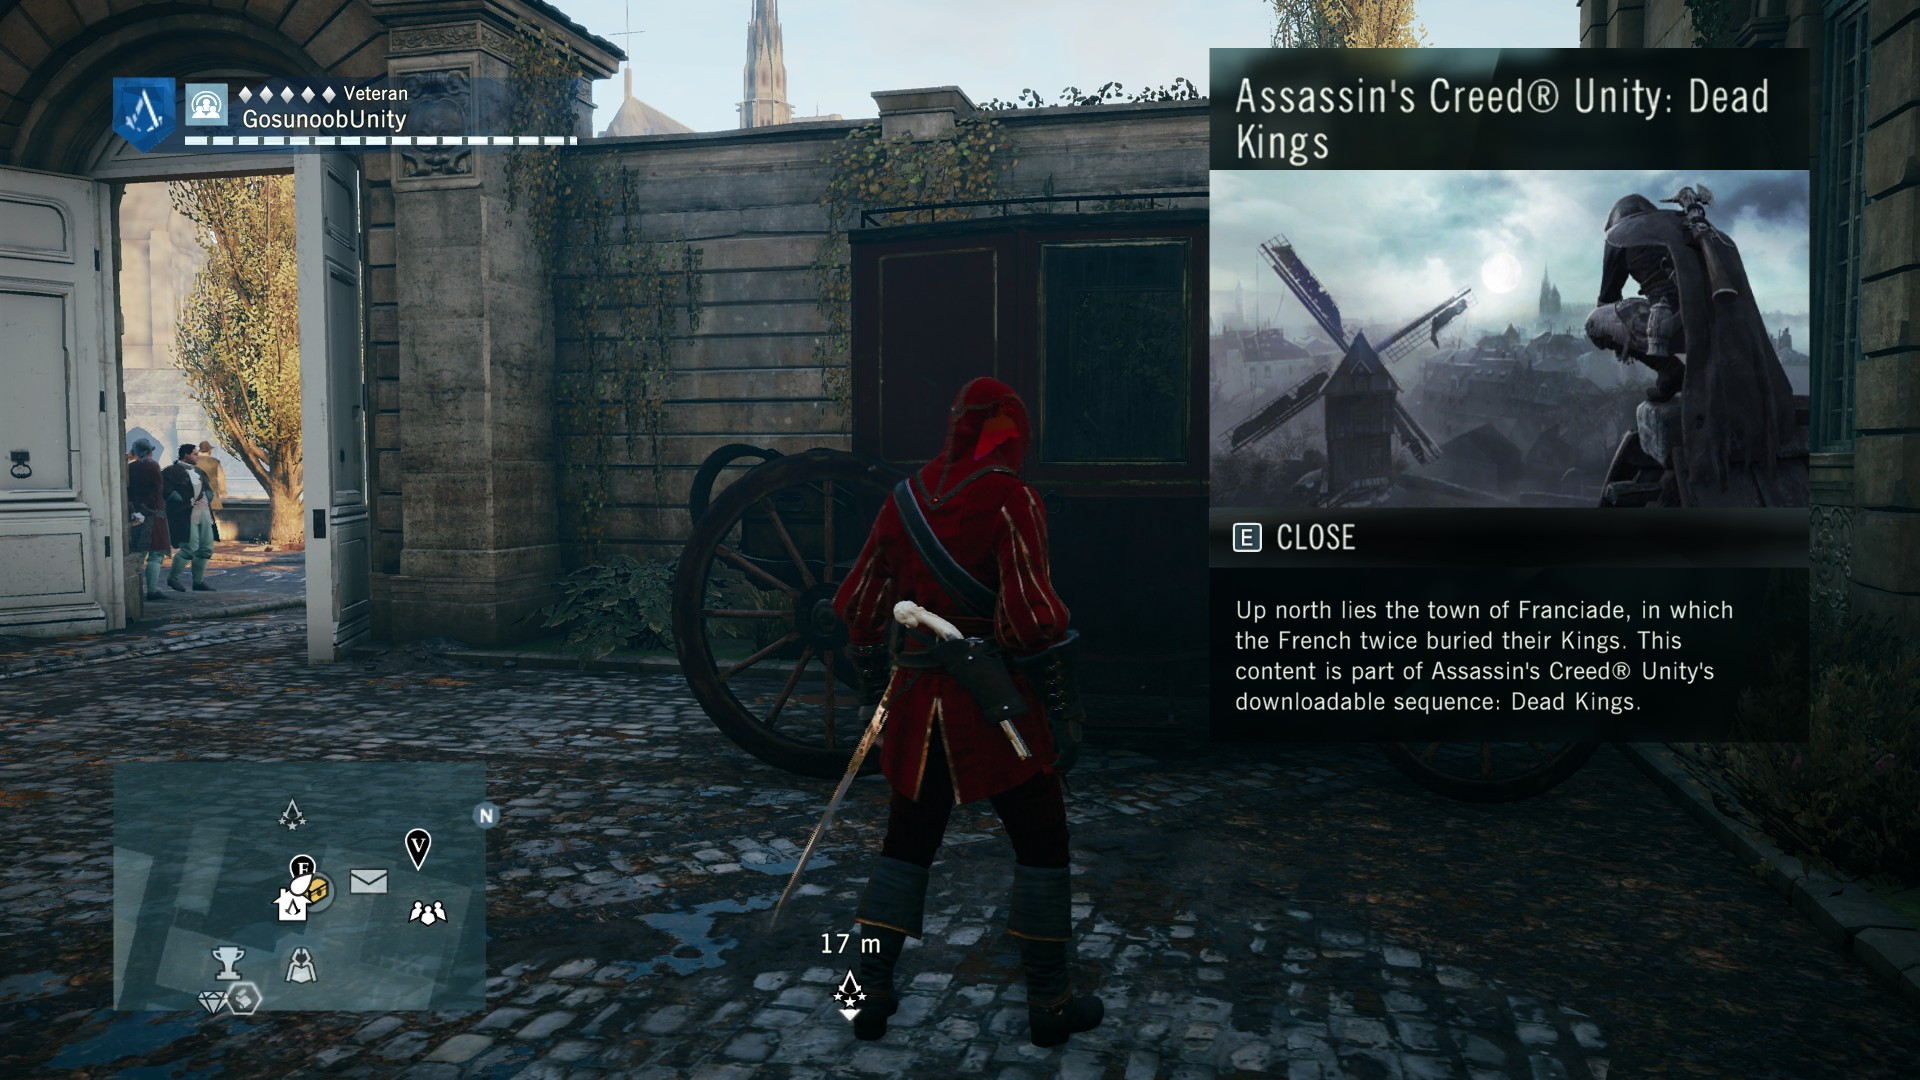 How to start playing Dead Kings DLC in AC Unity